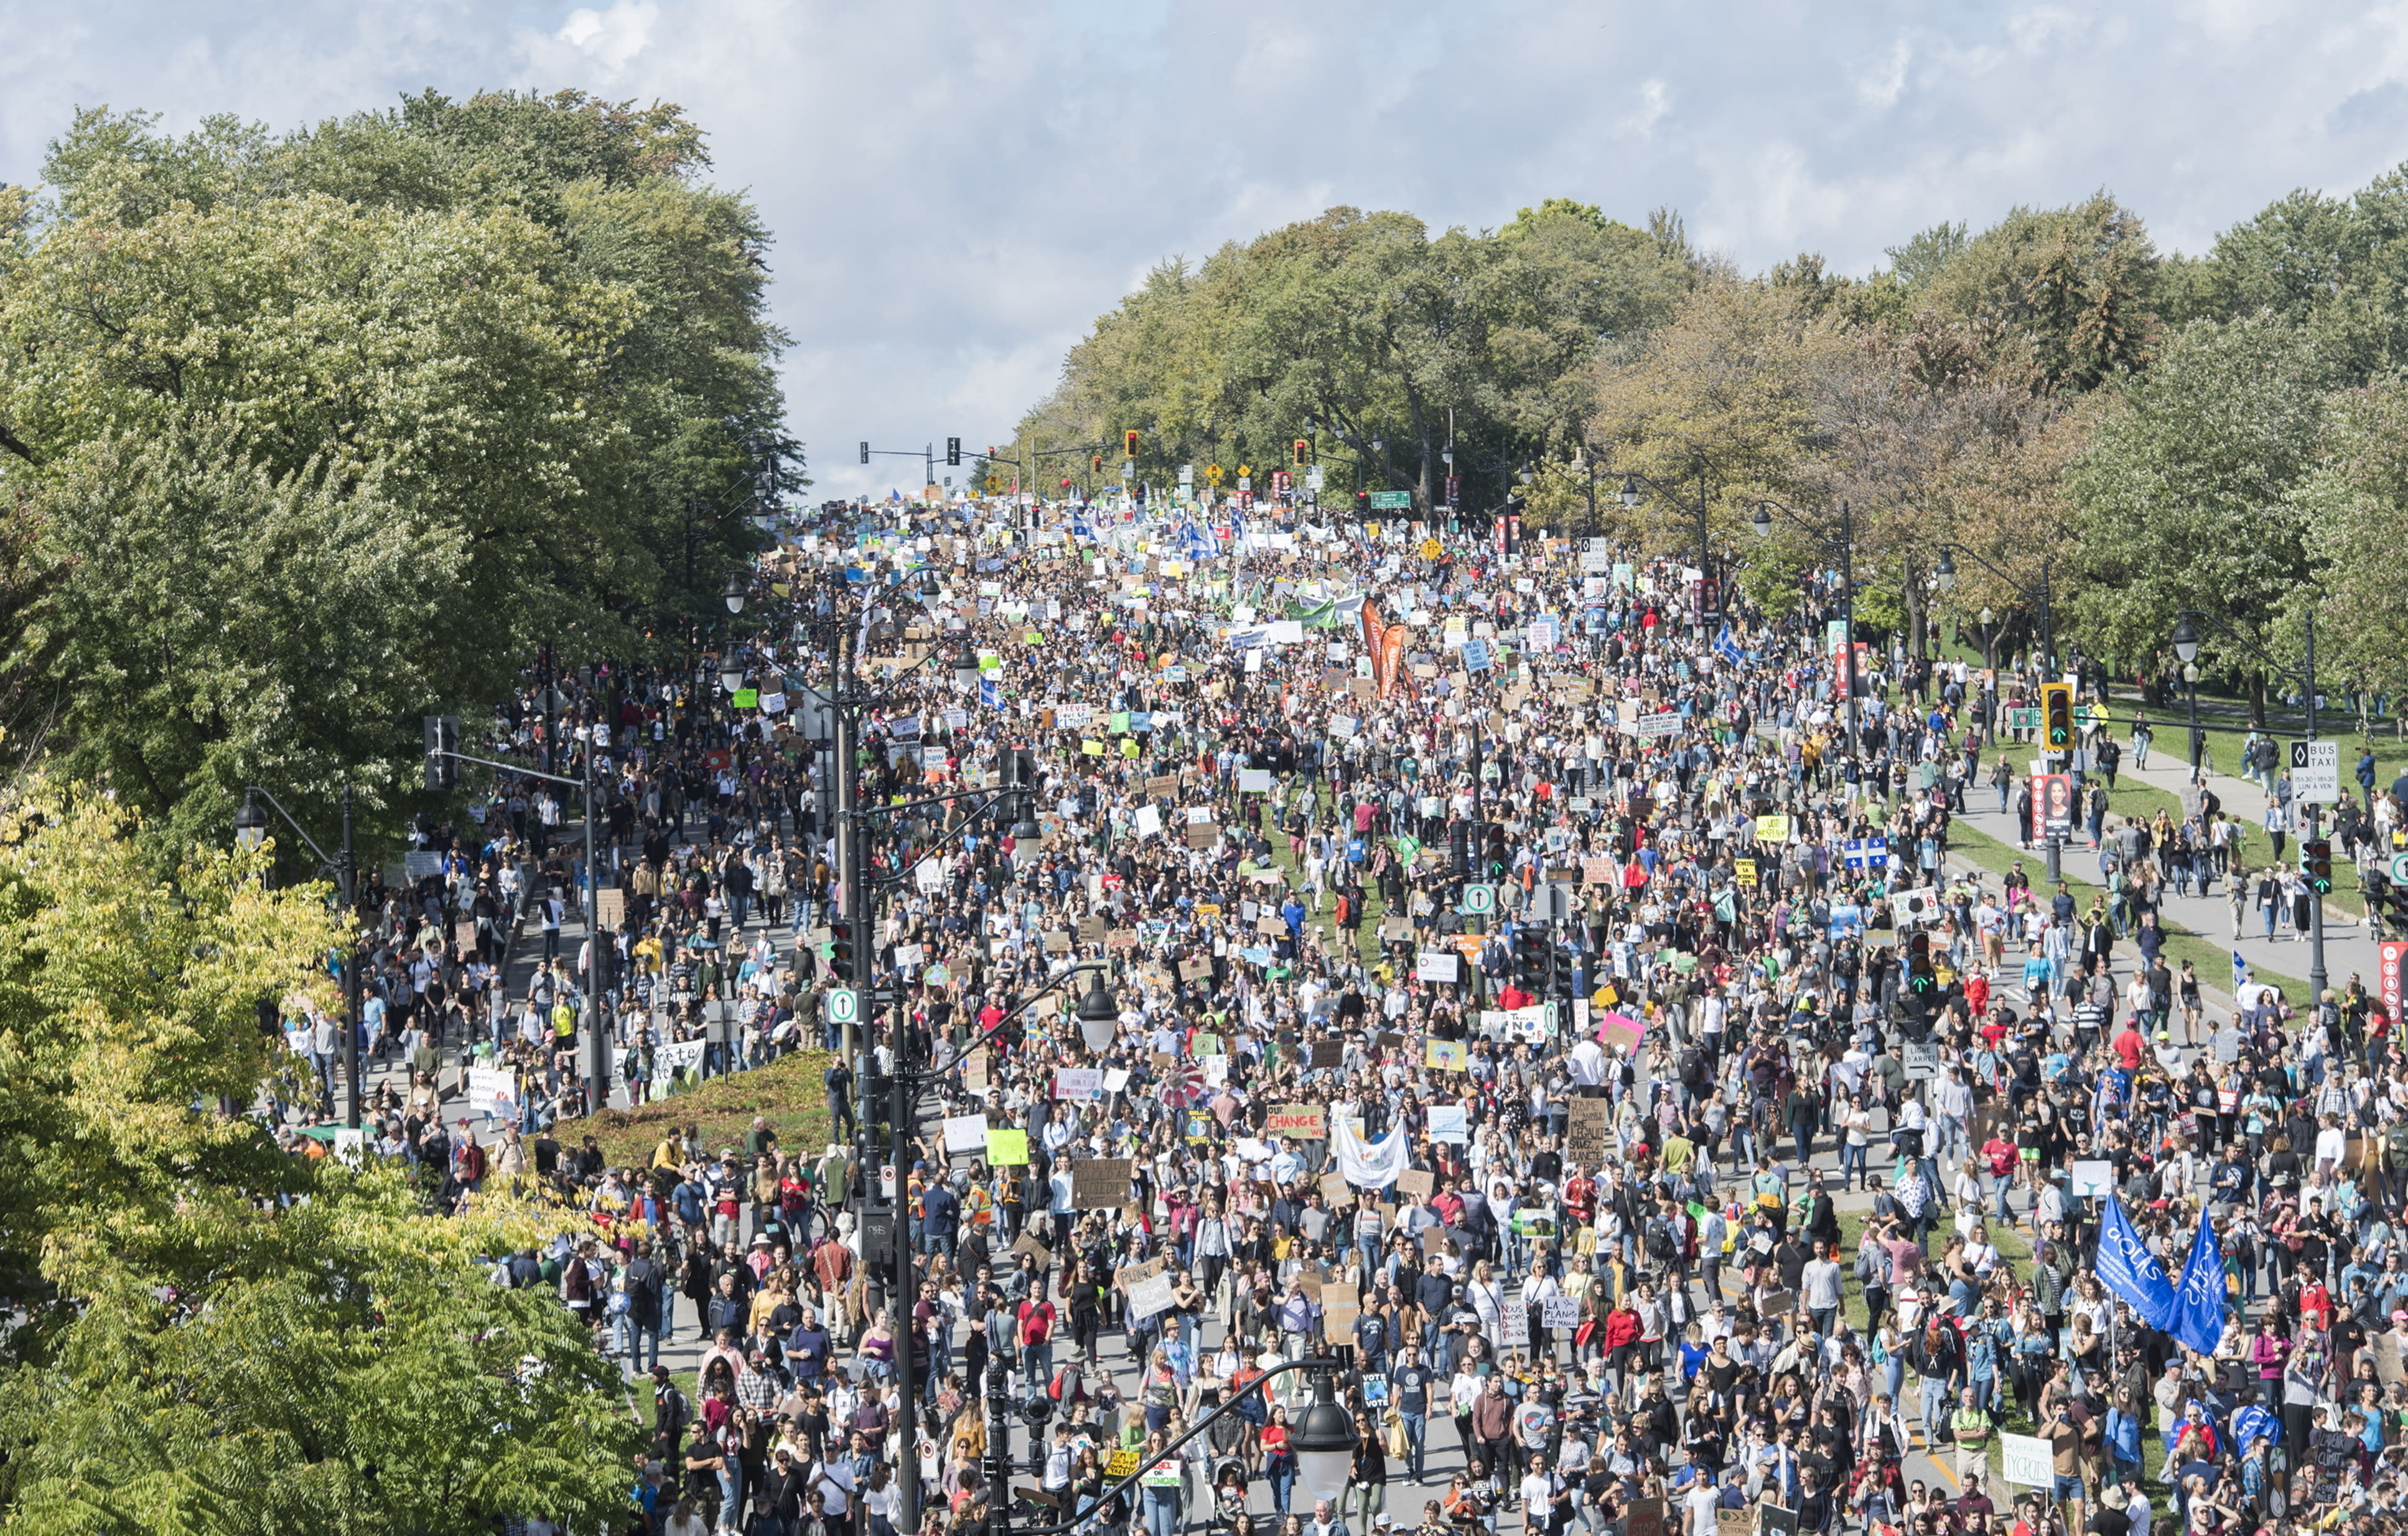 Thunberg leads massive climate march in Montreal